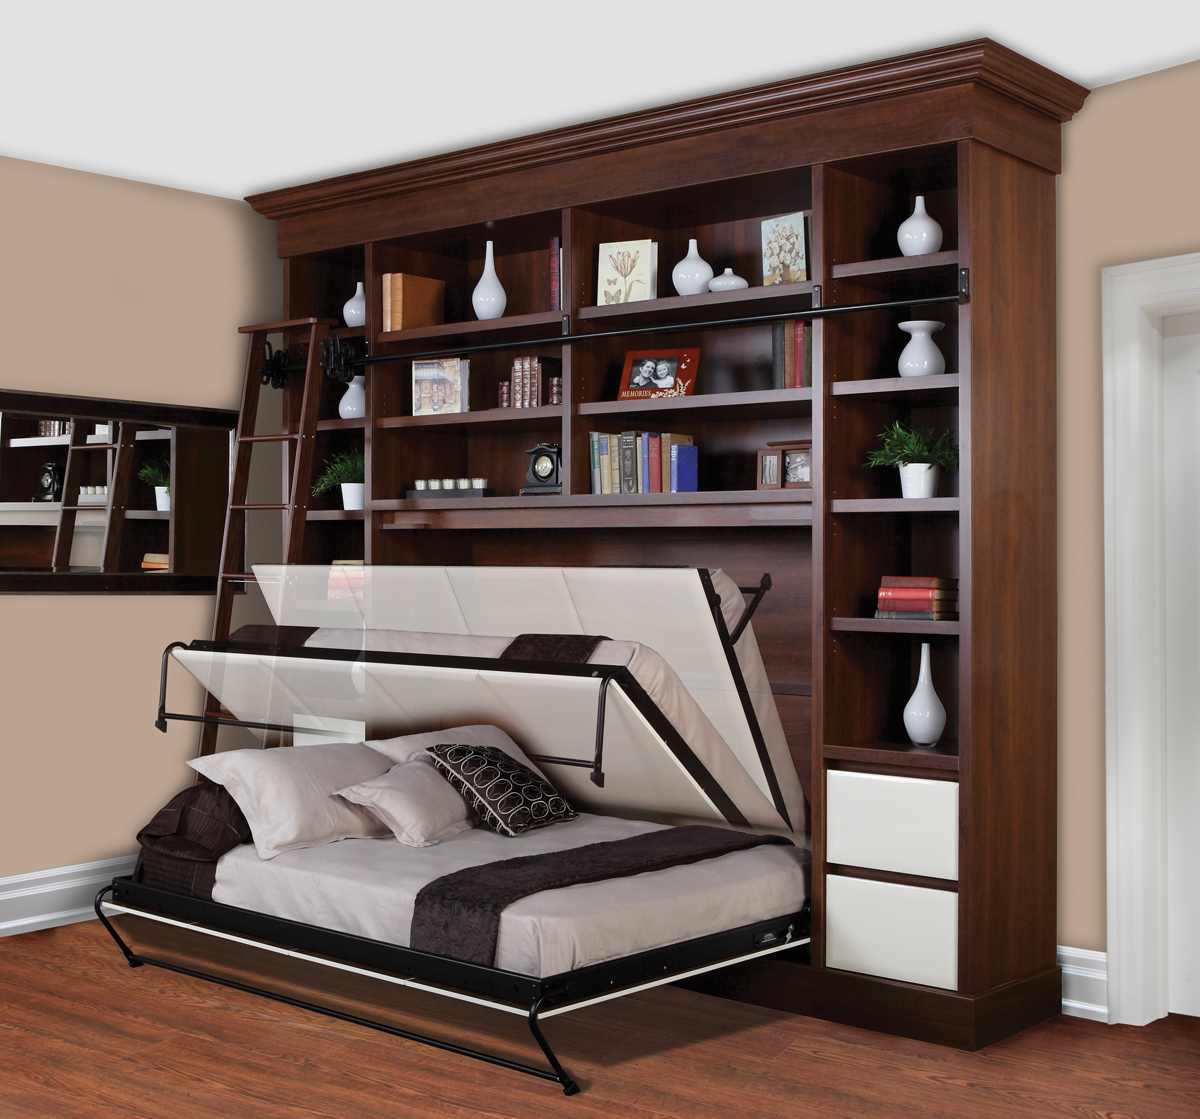 modern wall bed. Gorgeous Wooden Storage Design With White Murphy Bed Kit Lowes On Floor Creamy Painted Modern Wall